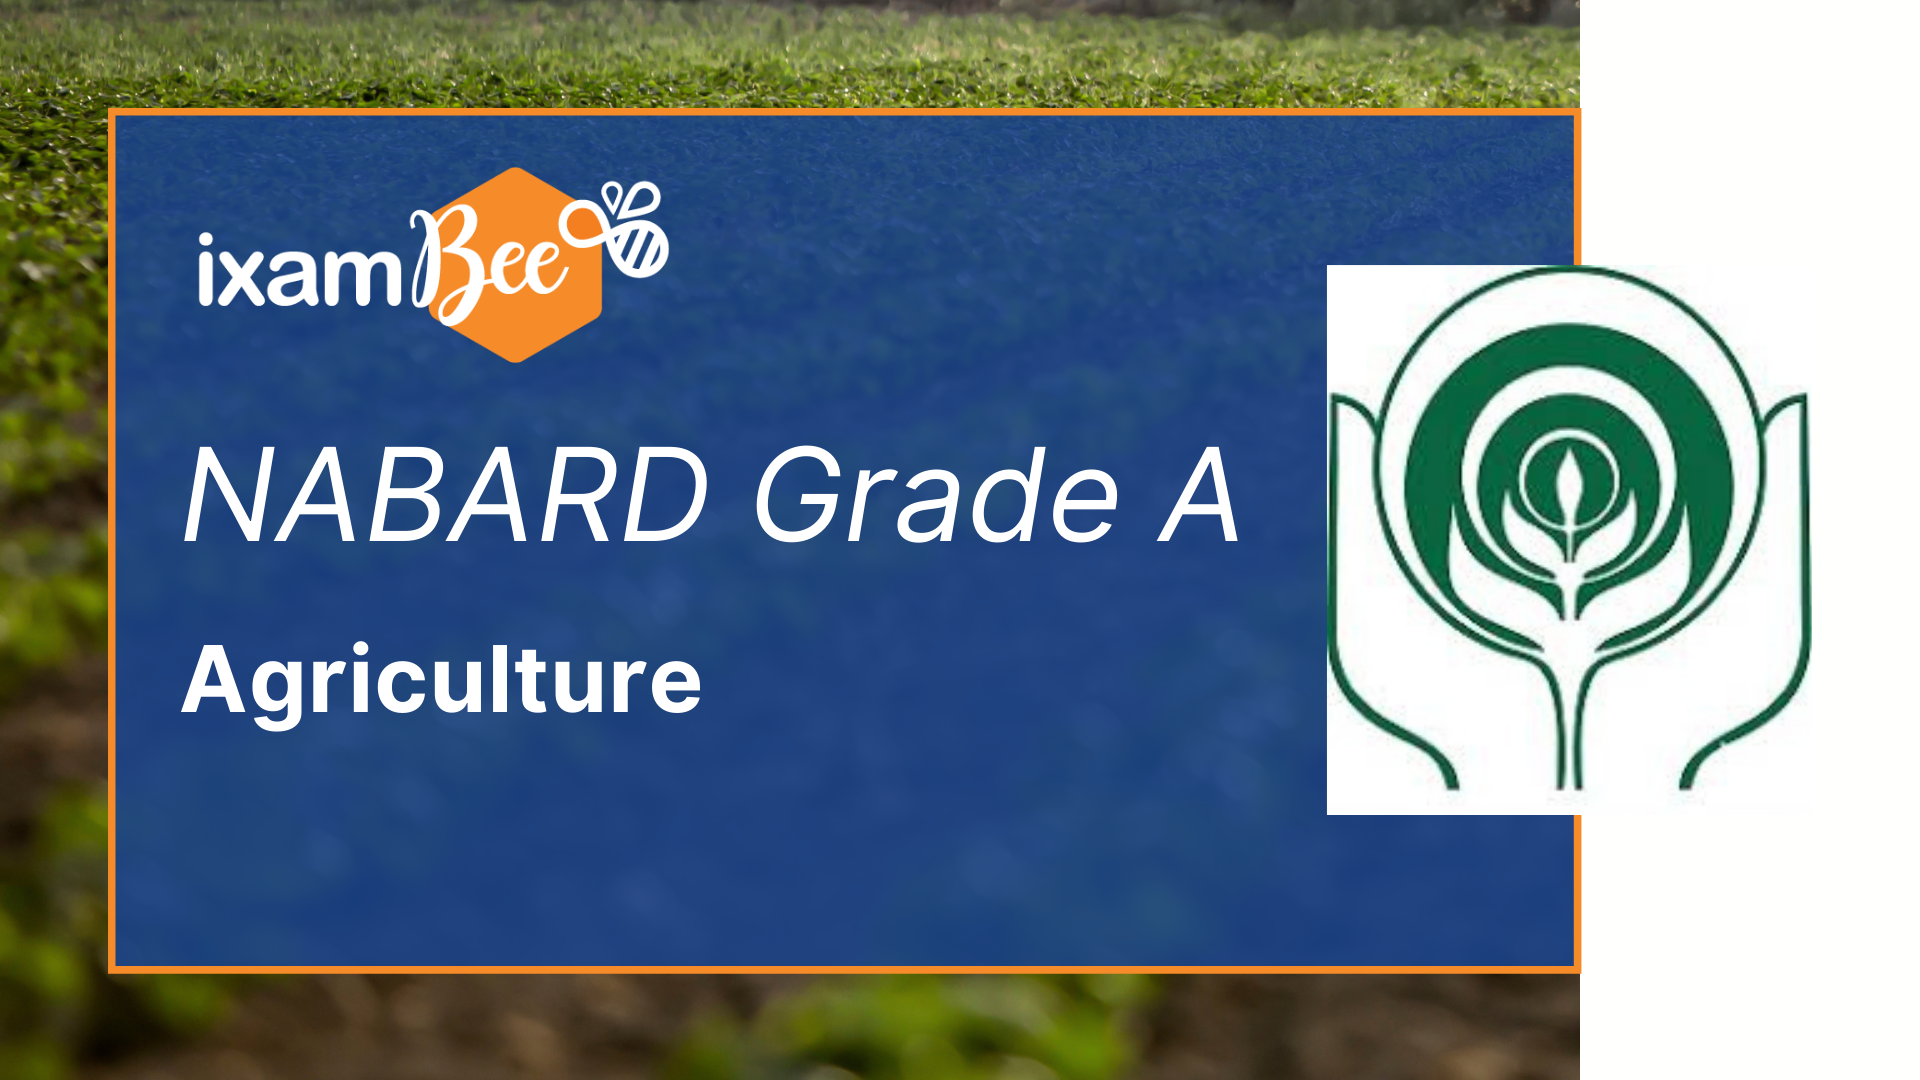 NABARD Grade A agriculture